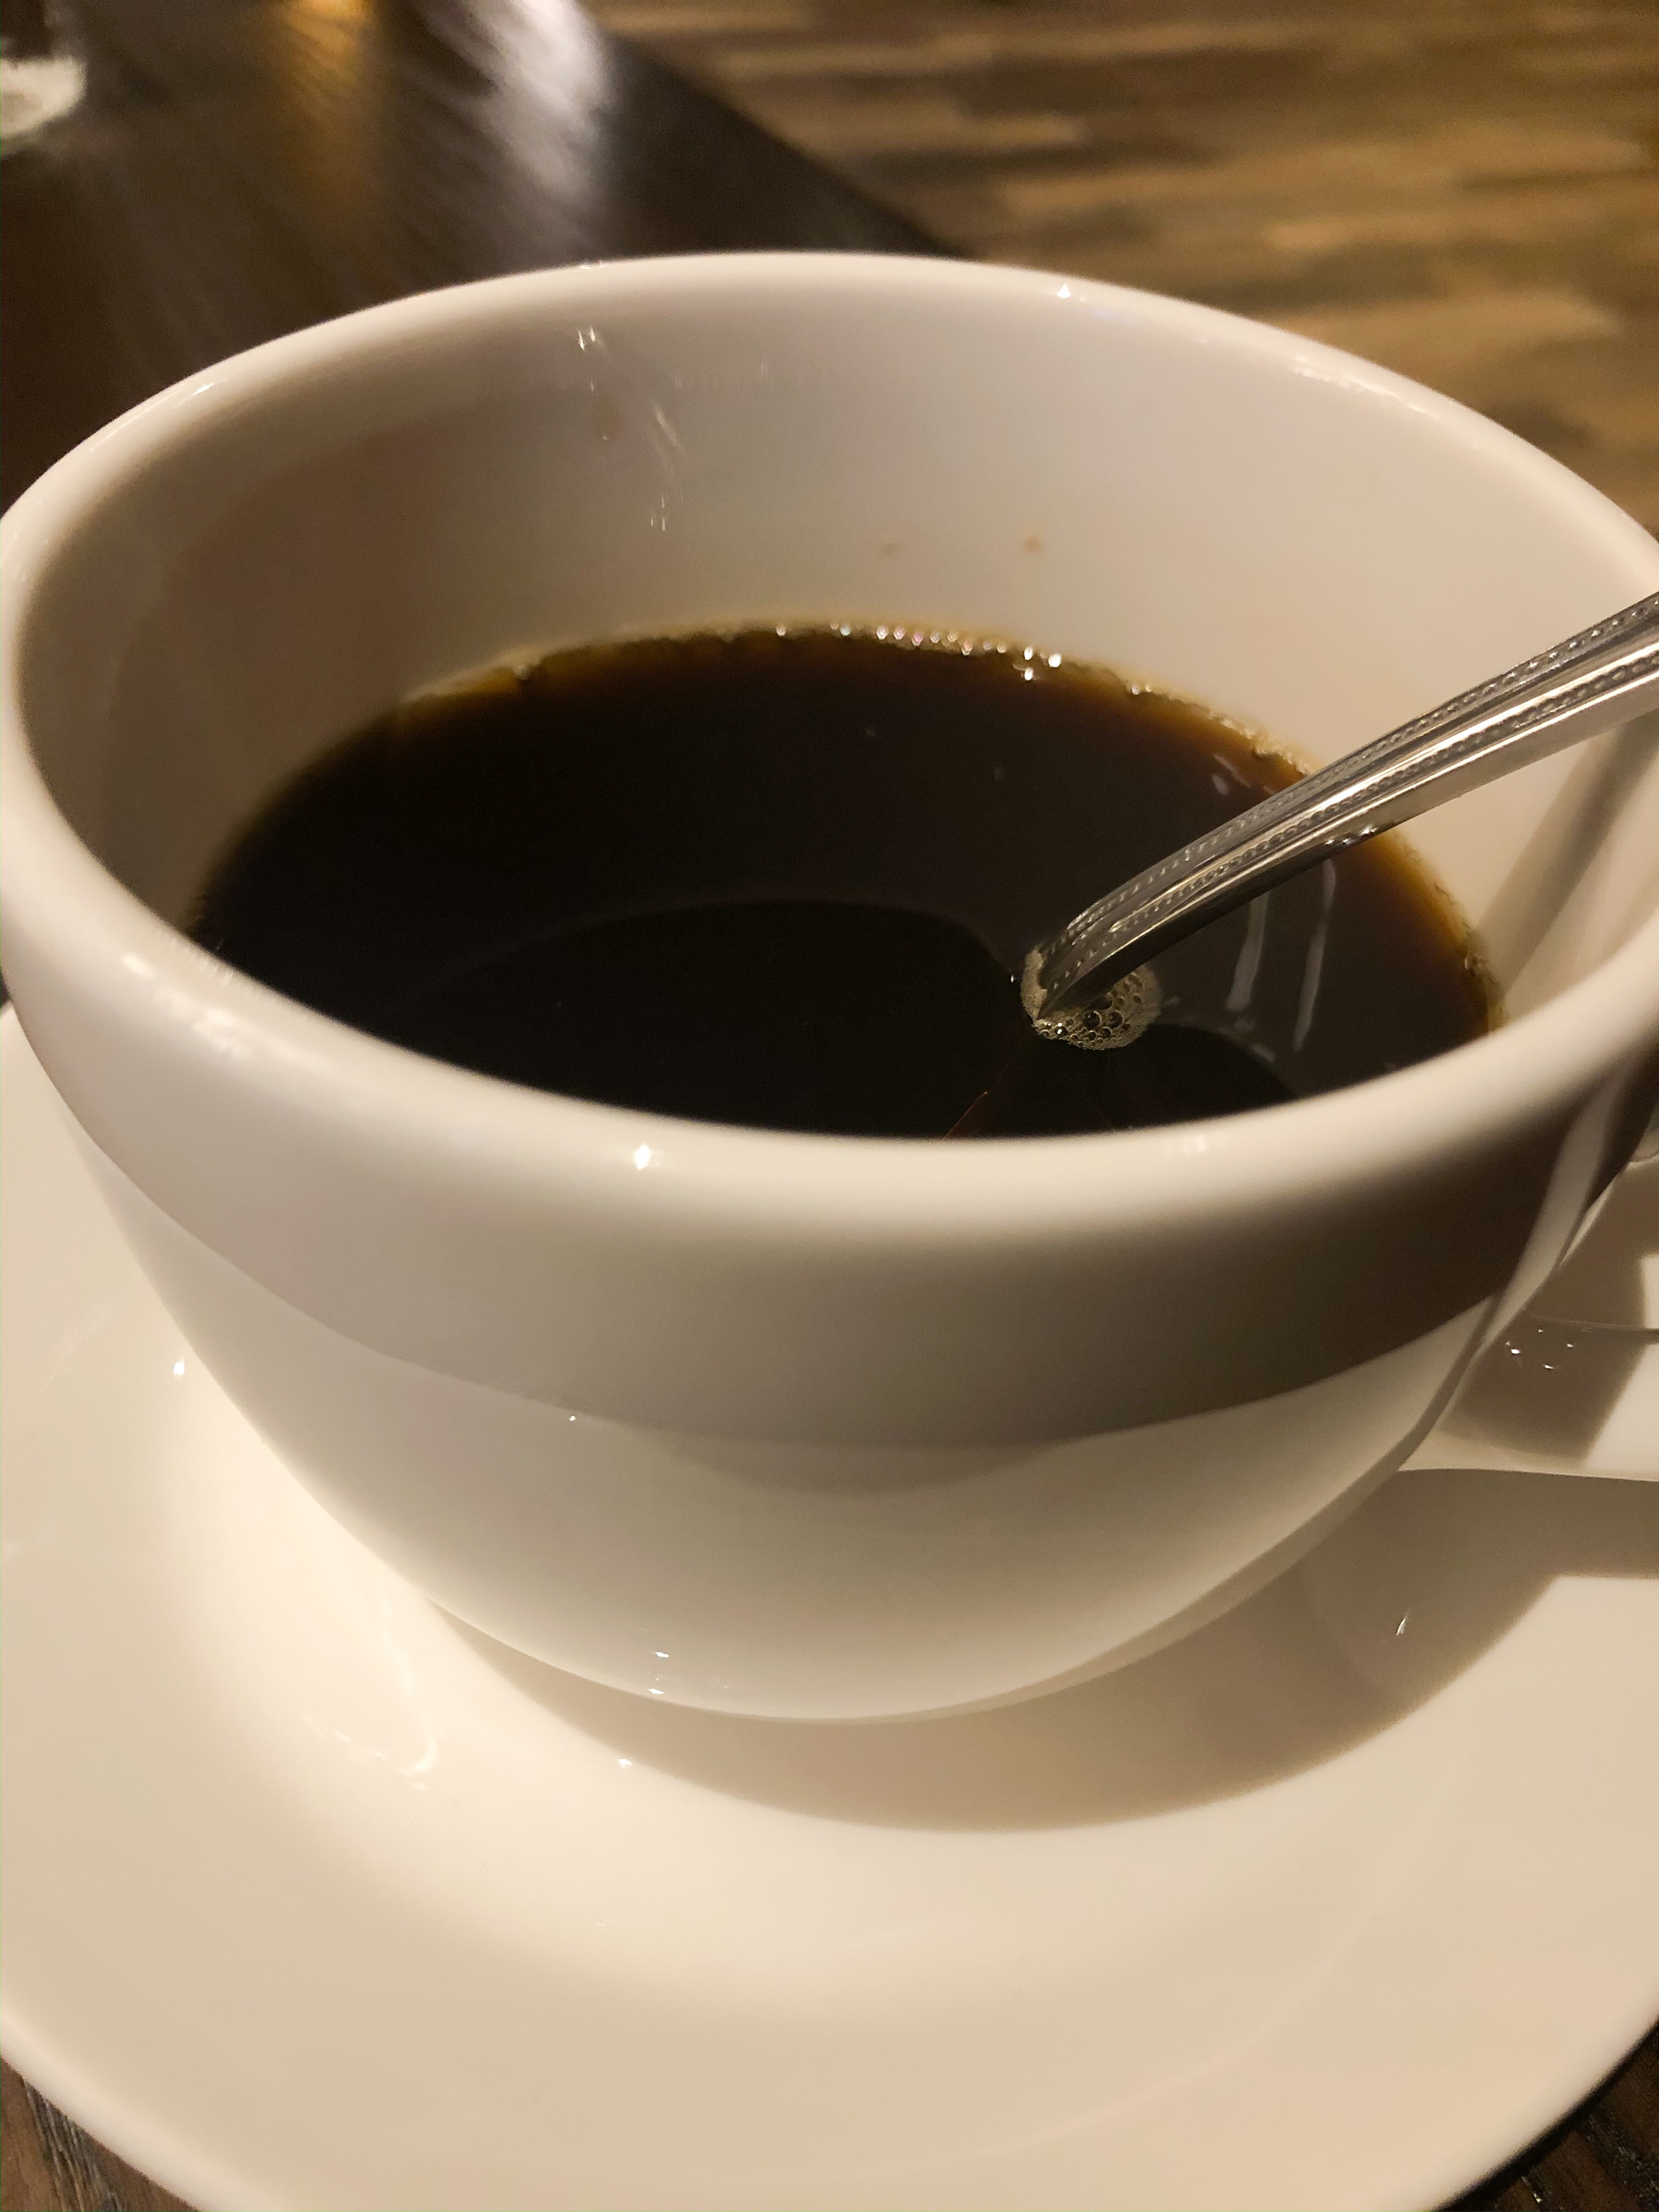 A cup of coffee with a spoon in it.